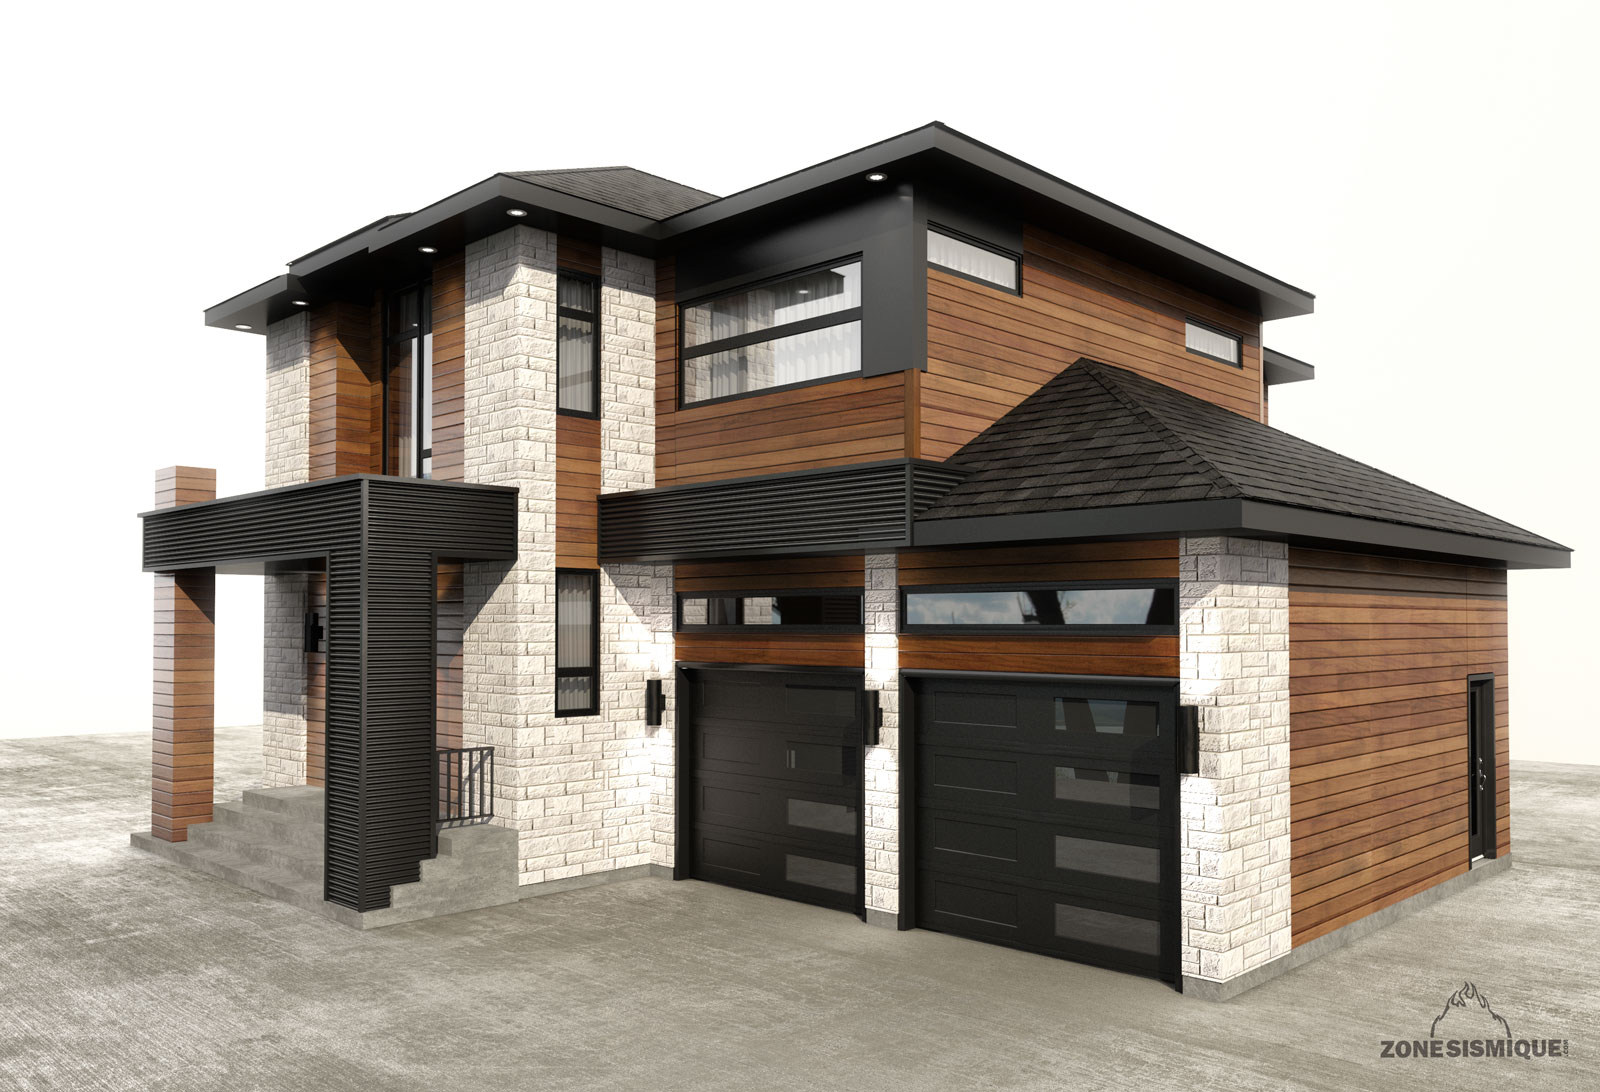 Zone sismique contruction salette maison moderne garage for 3d garage builder